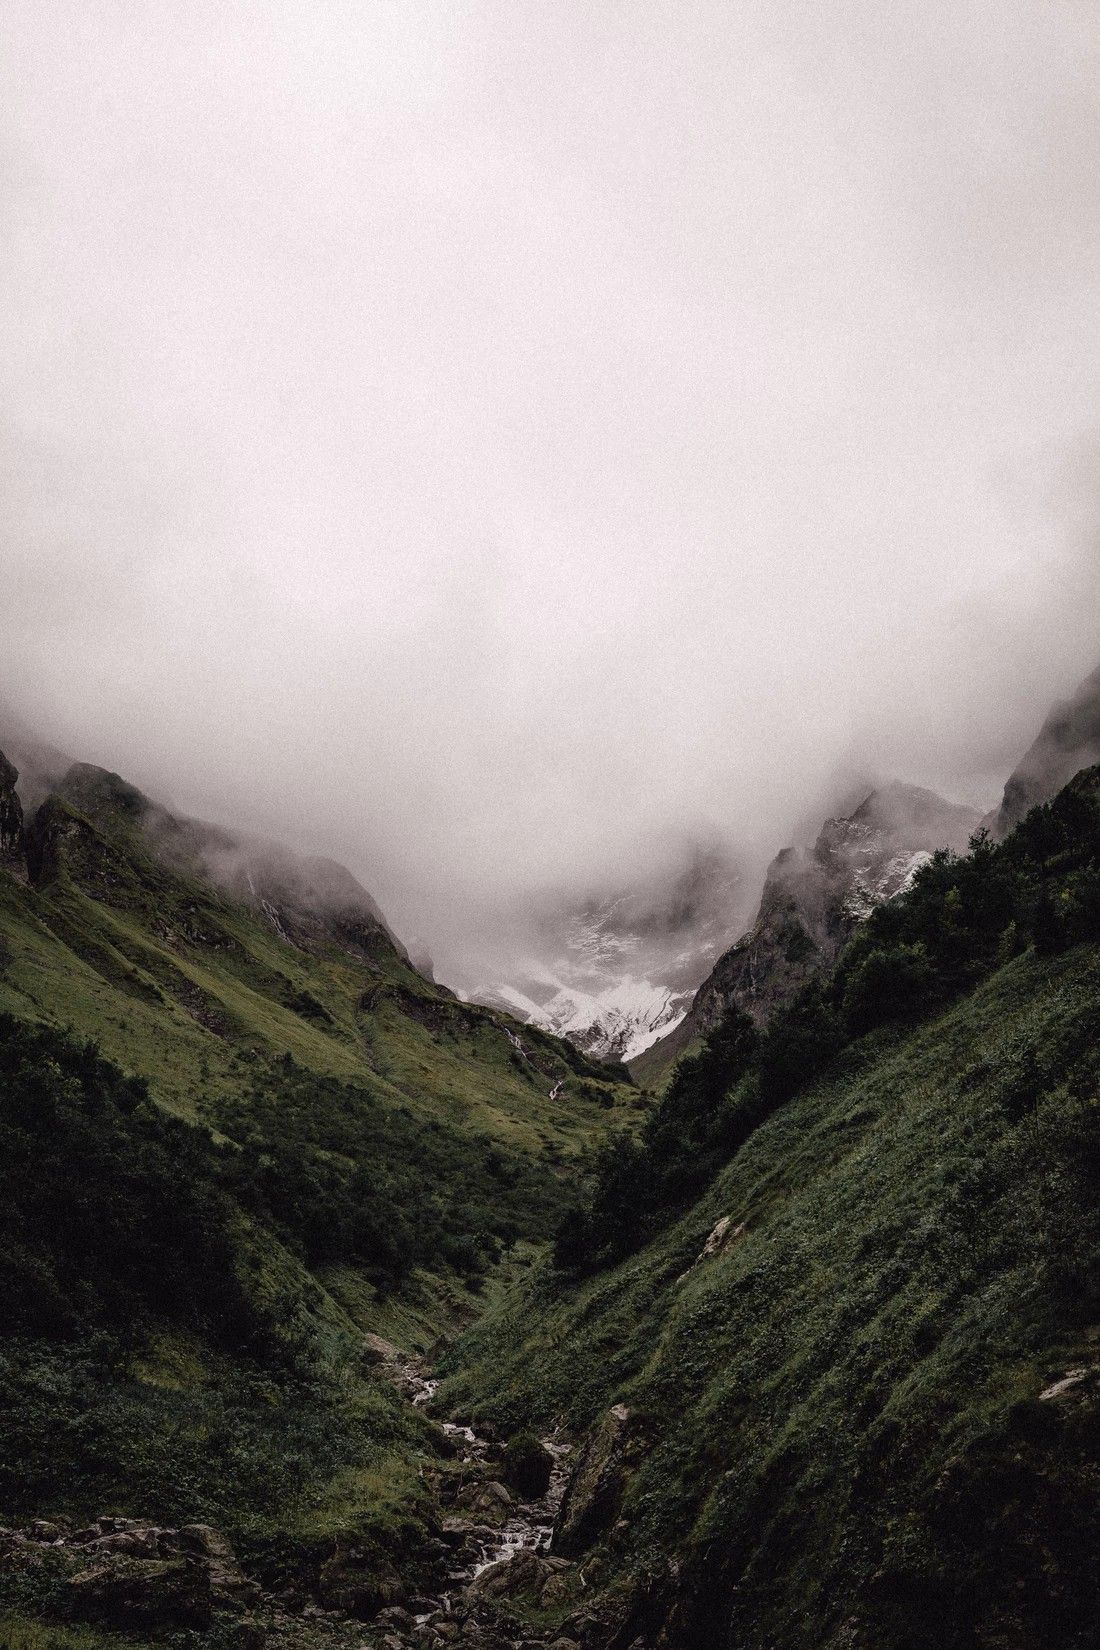 A Hike In The Bavarian Alps With Foggy Weather By Adrian Infernus Adrian Infernus Foggy Weather Nature Photos Nature Photography